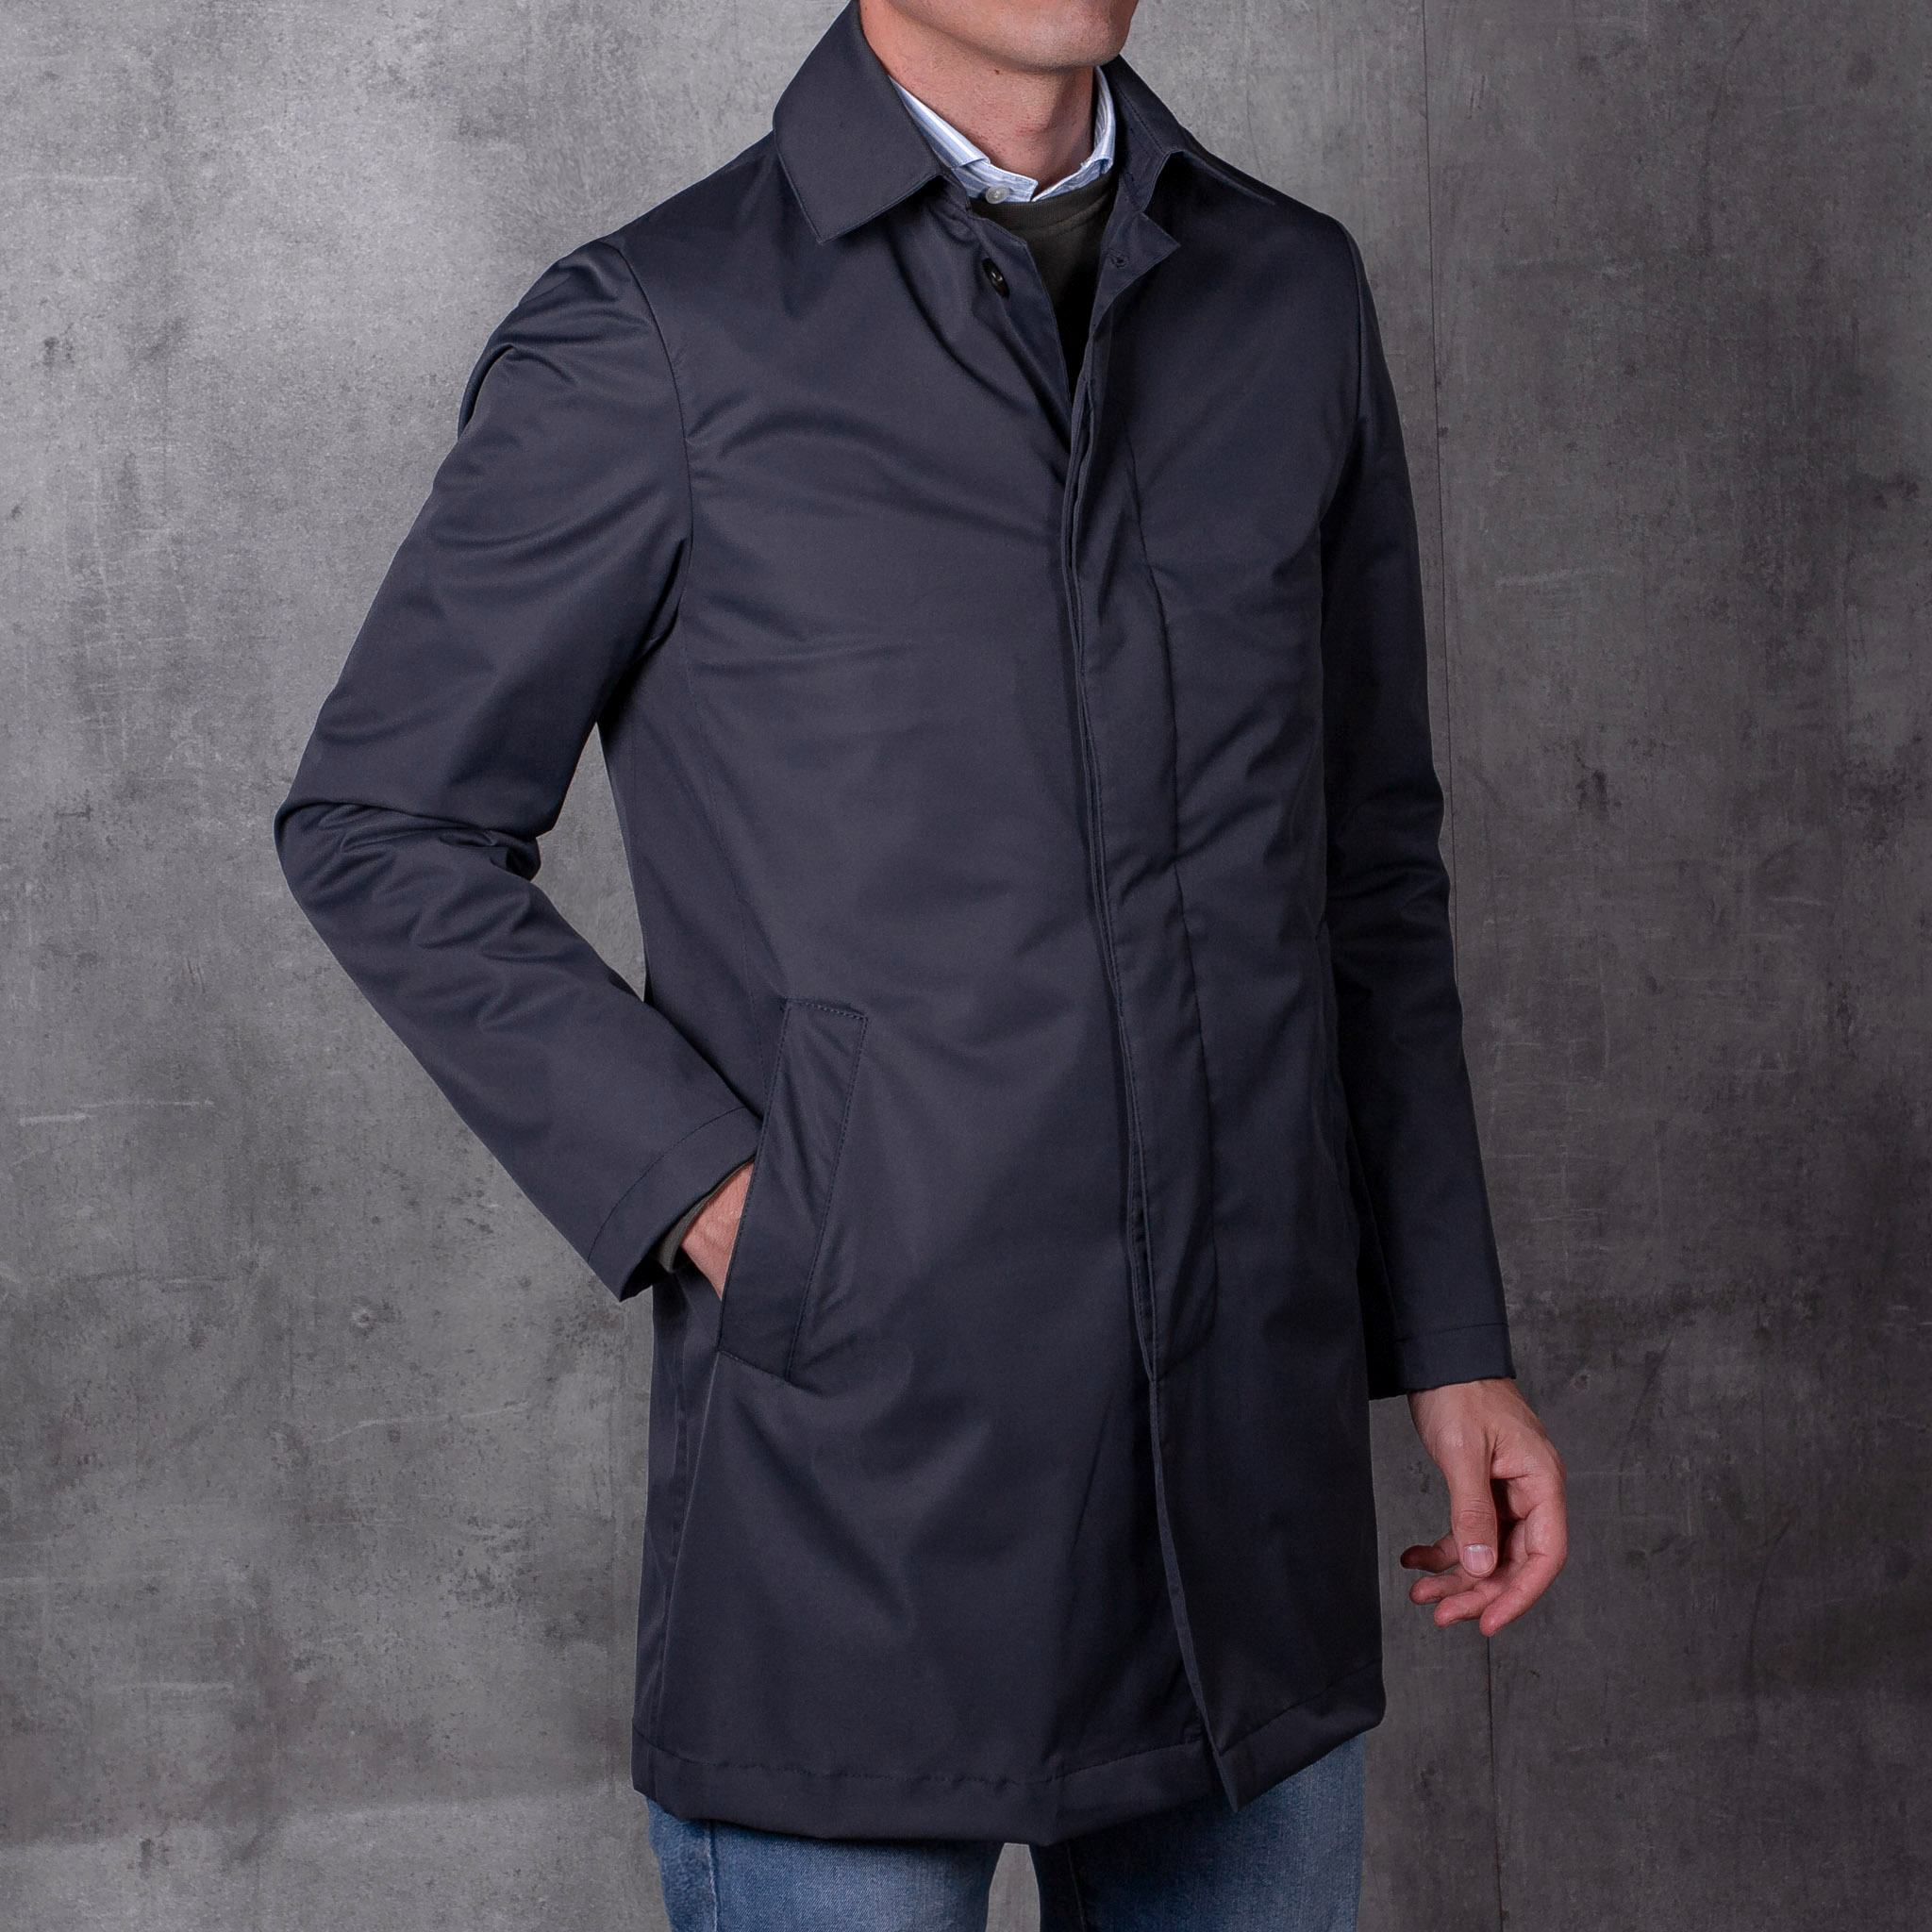 RAINCOAT-GABARDINA-01-02-The-Seelk-1